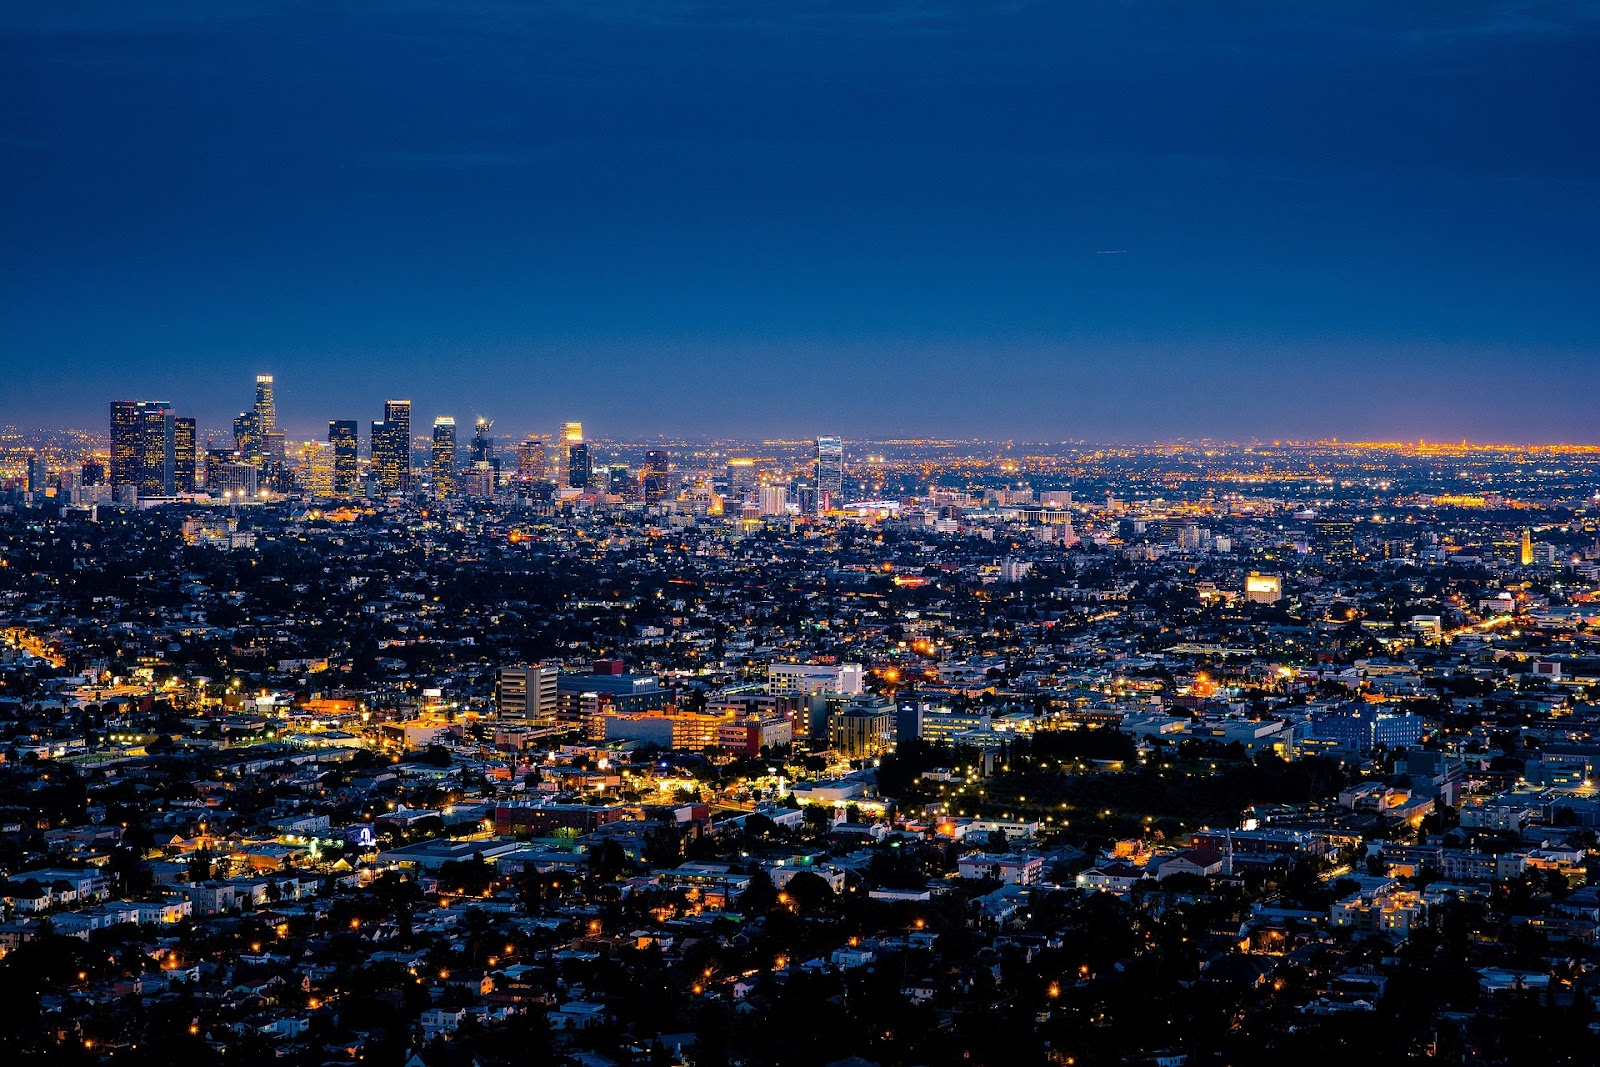 los angeles city skyline view at night time. See the city of angeles during a California road trip